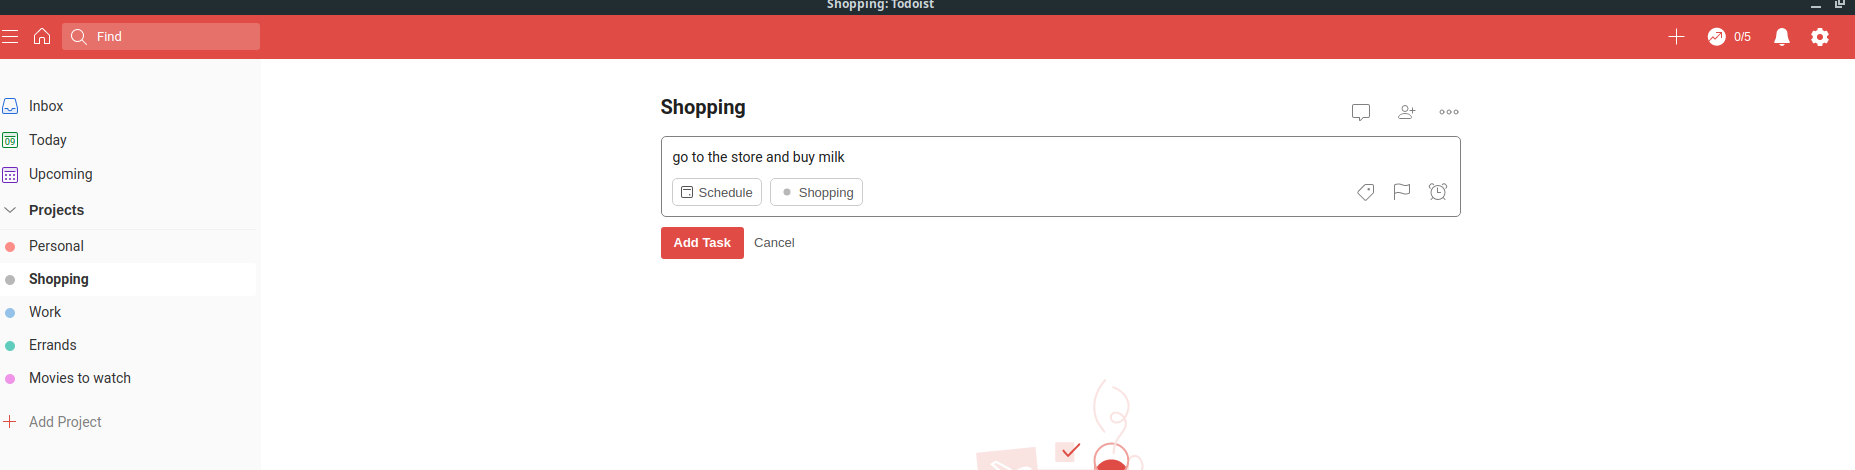 how to use the official todoist app on linux 2 How to use the official Todoist app on Linux